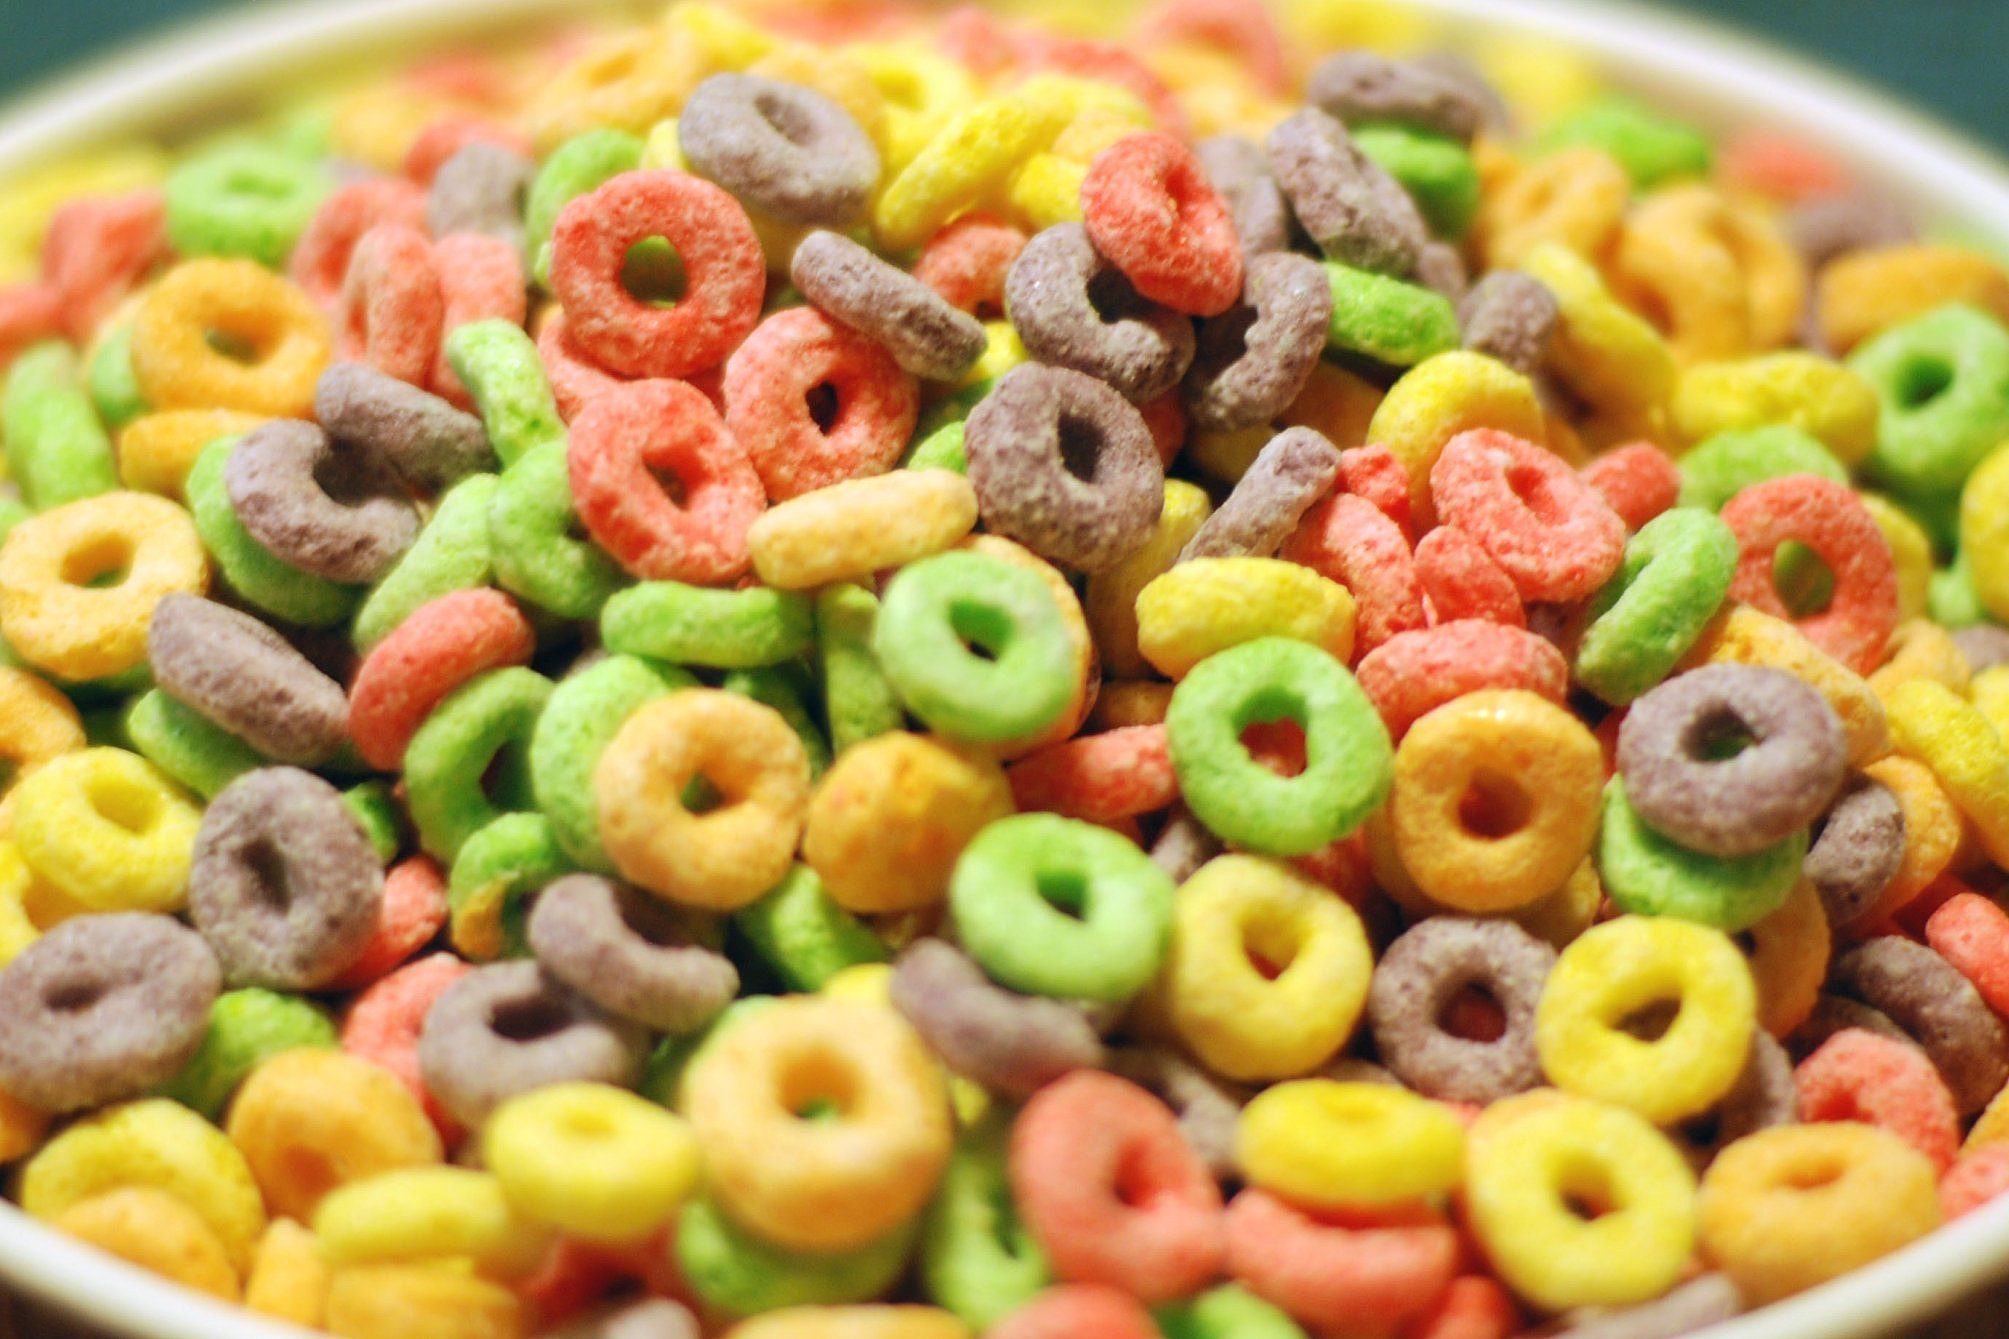 Brand-Name Cereal